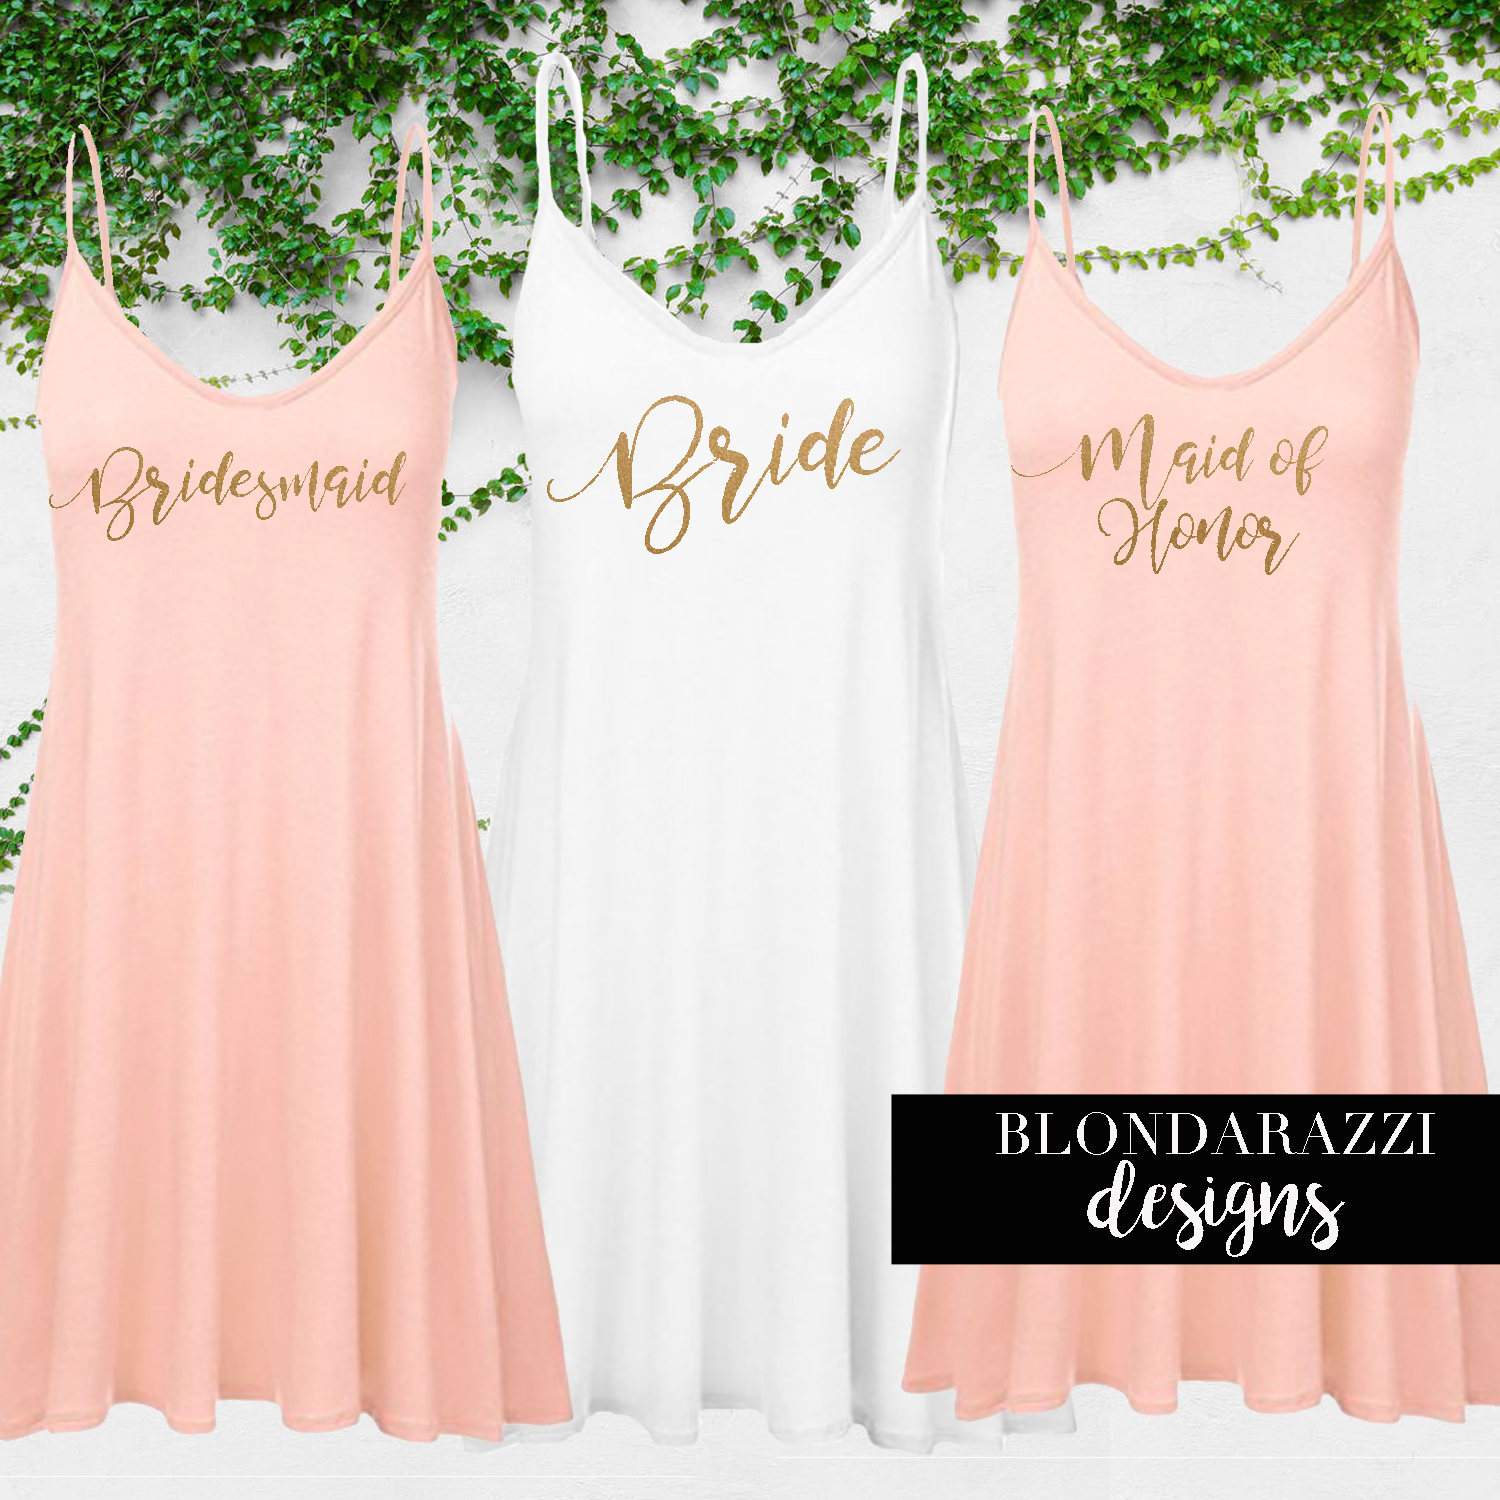 Bride And Bridesmaid Outfits Gifts For Getting Ready On Wedding Day